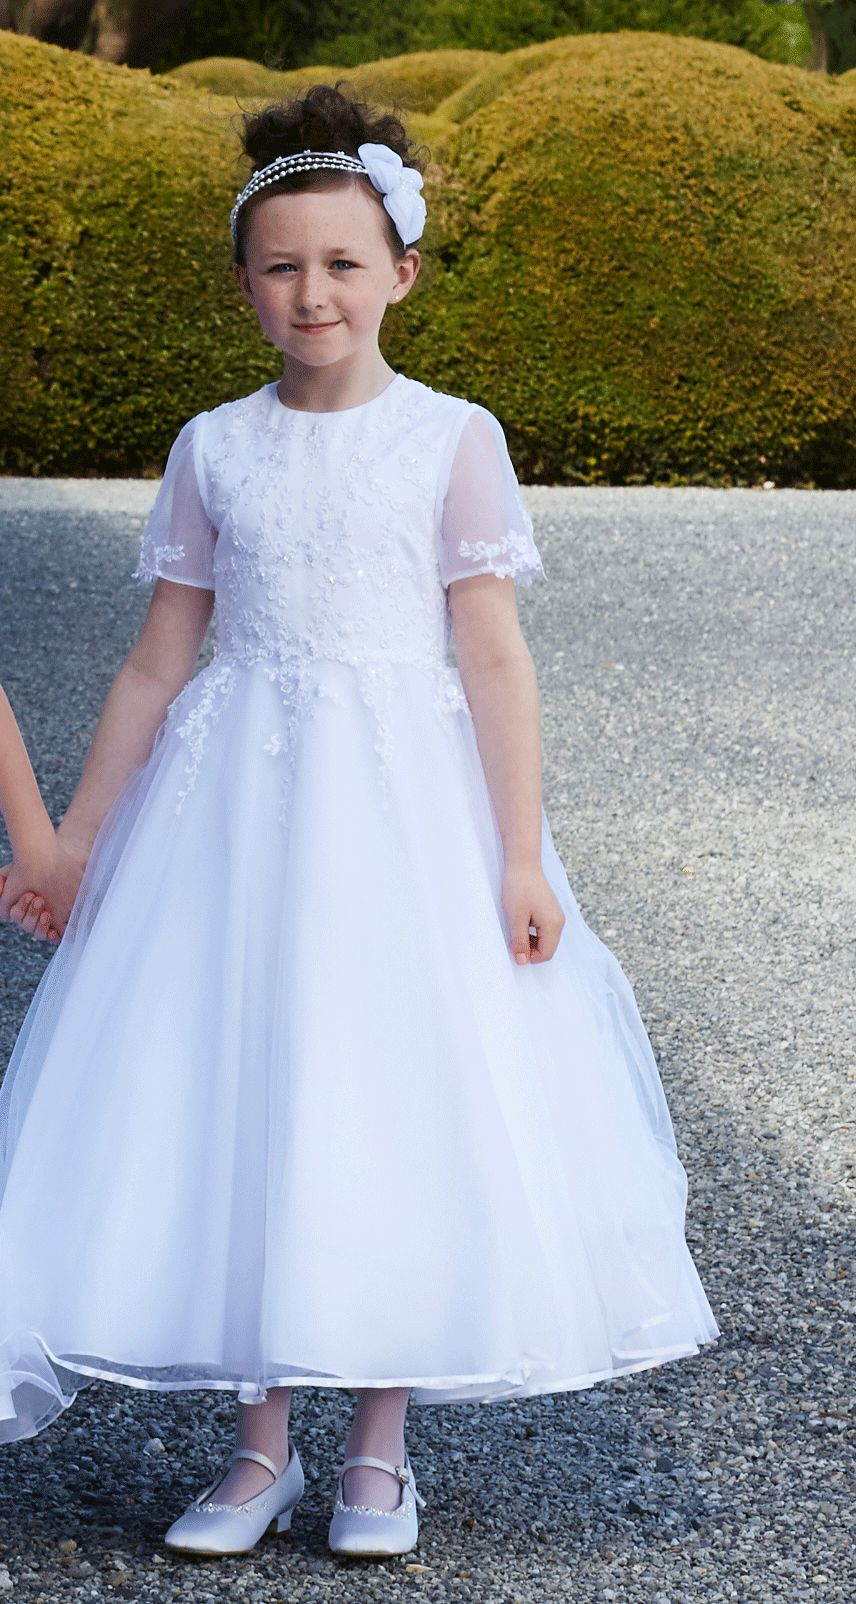 Traditional First Communion Dress - White Full Length with Illusion Princess Sleeves - Isabella - Tallulah 51GO4305